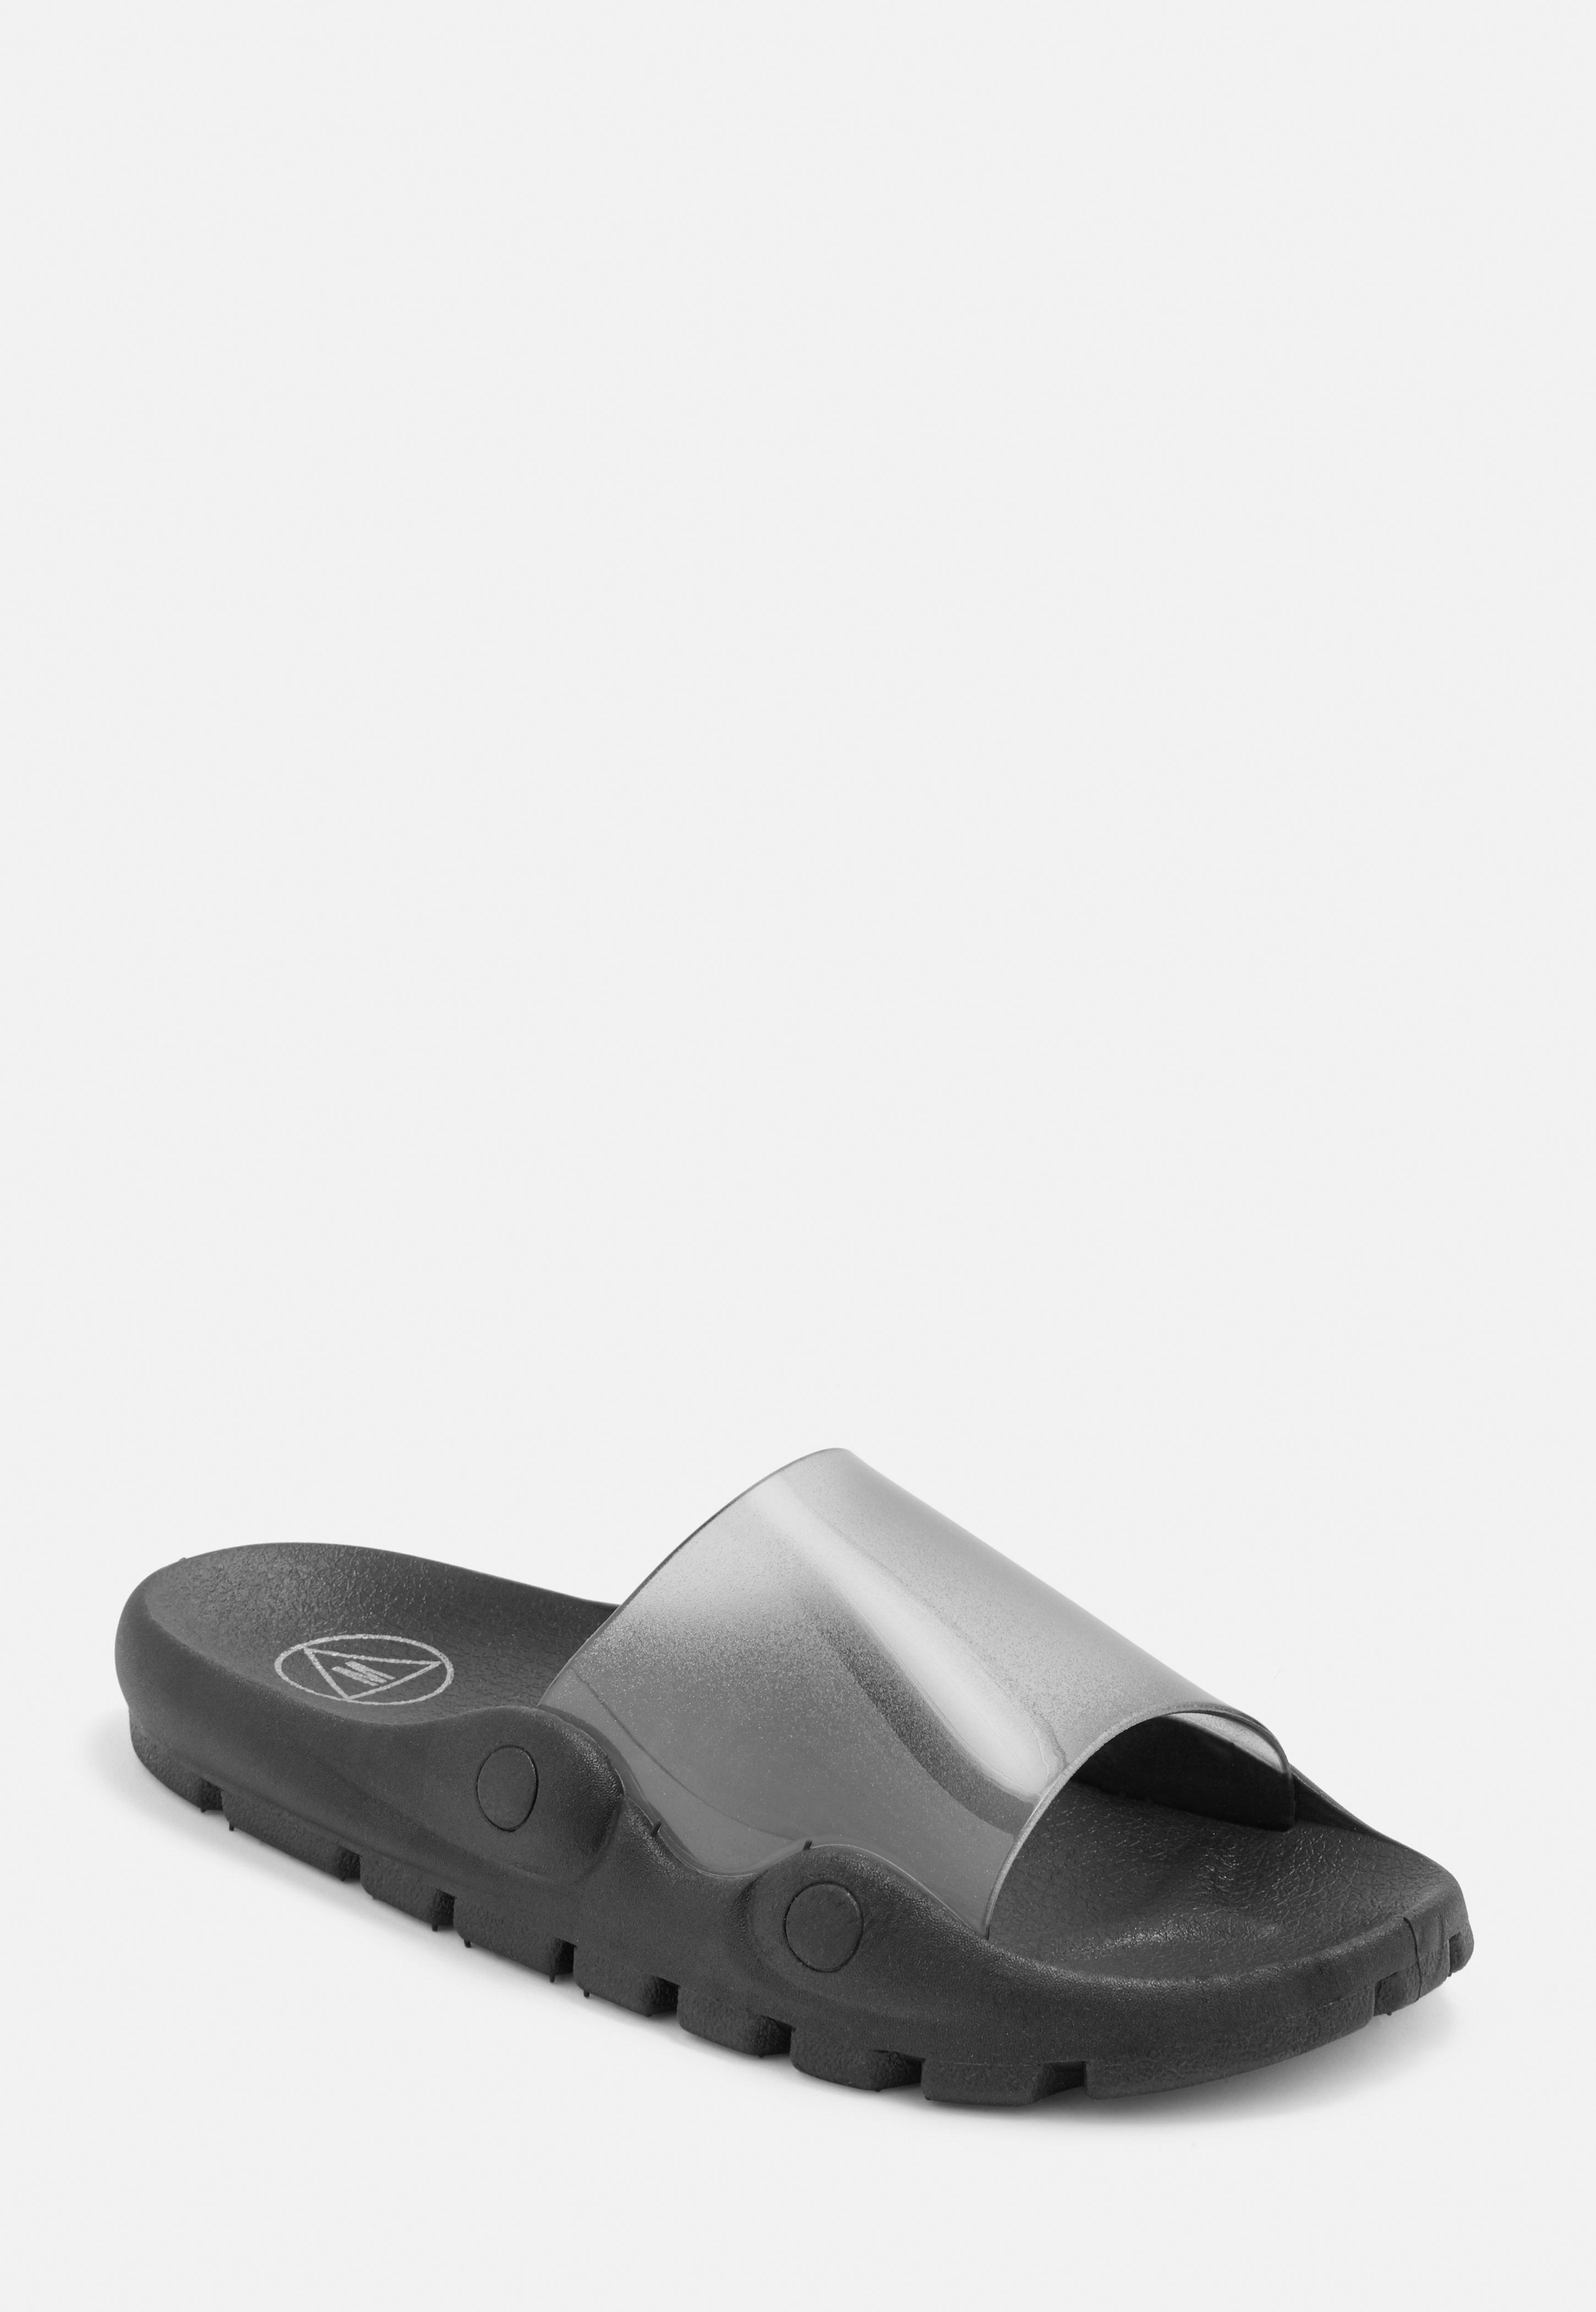 95e3d71174 Sandals | Womens Wedge & Strappy Sandals Online - Missguided